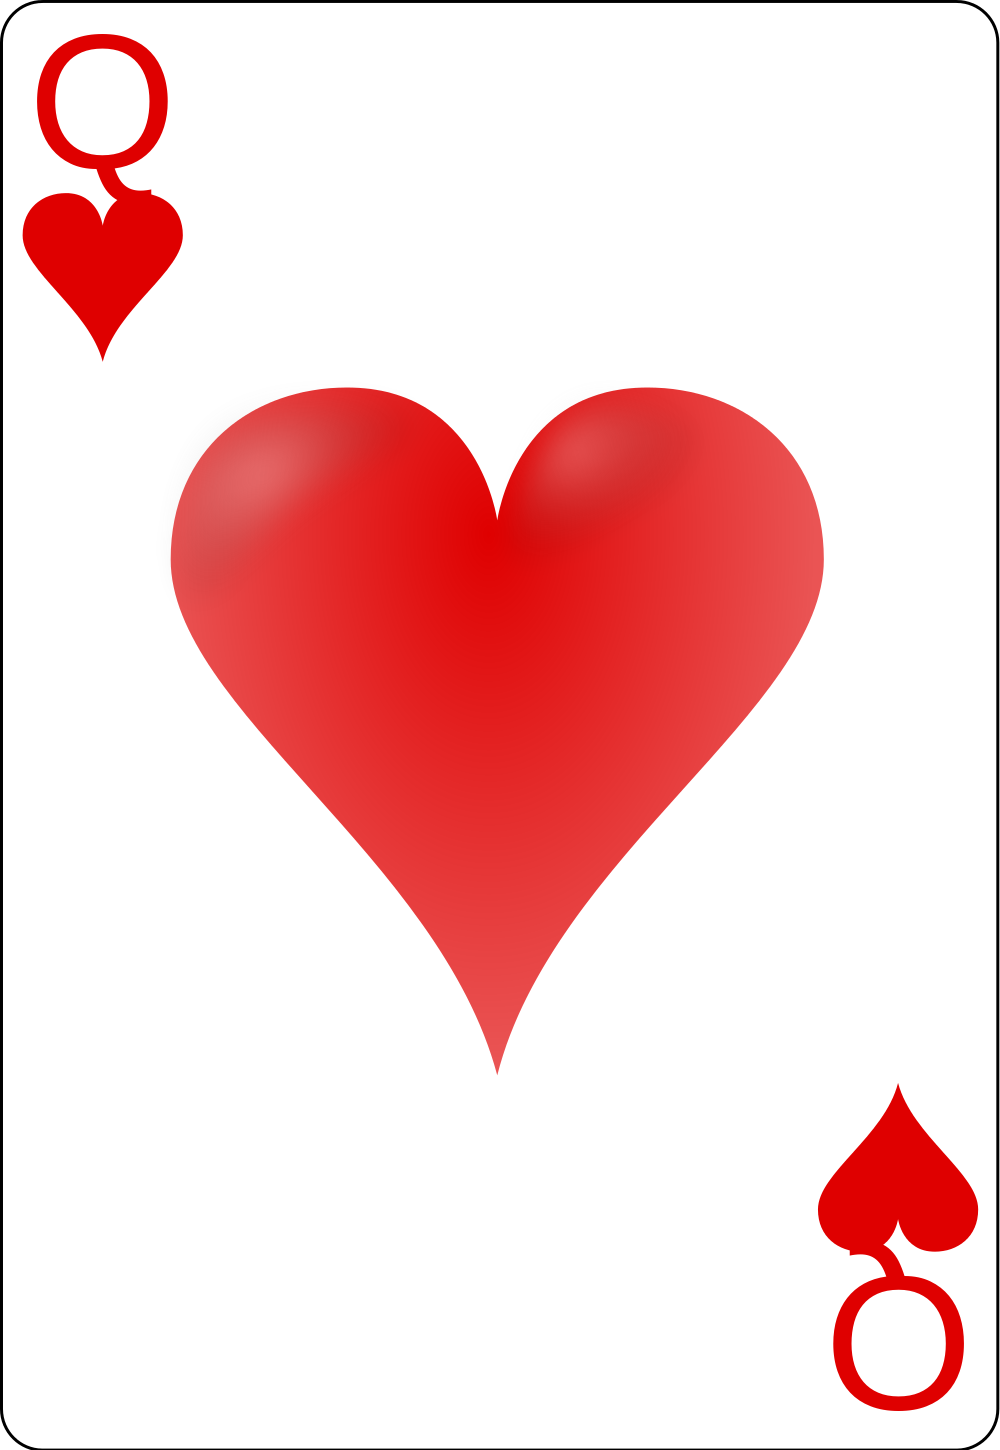 Card clipart heart queen. File of hearts svg